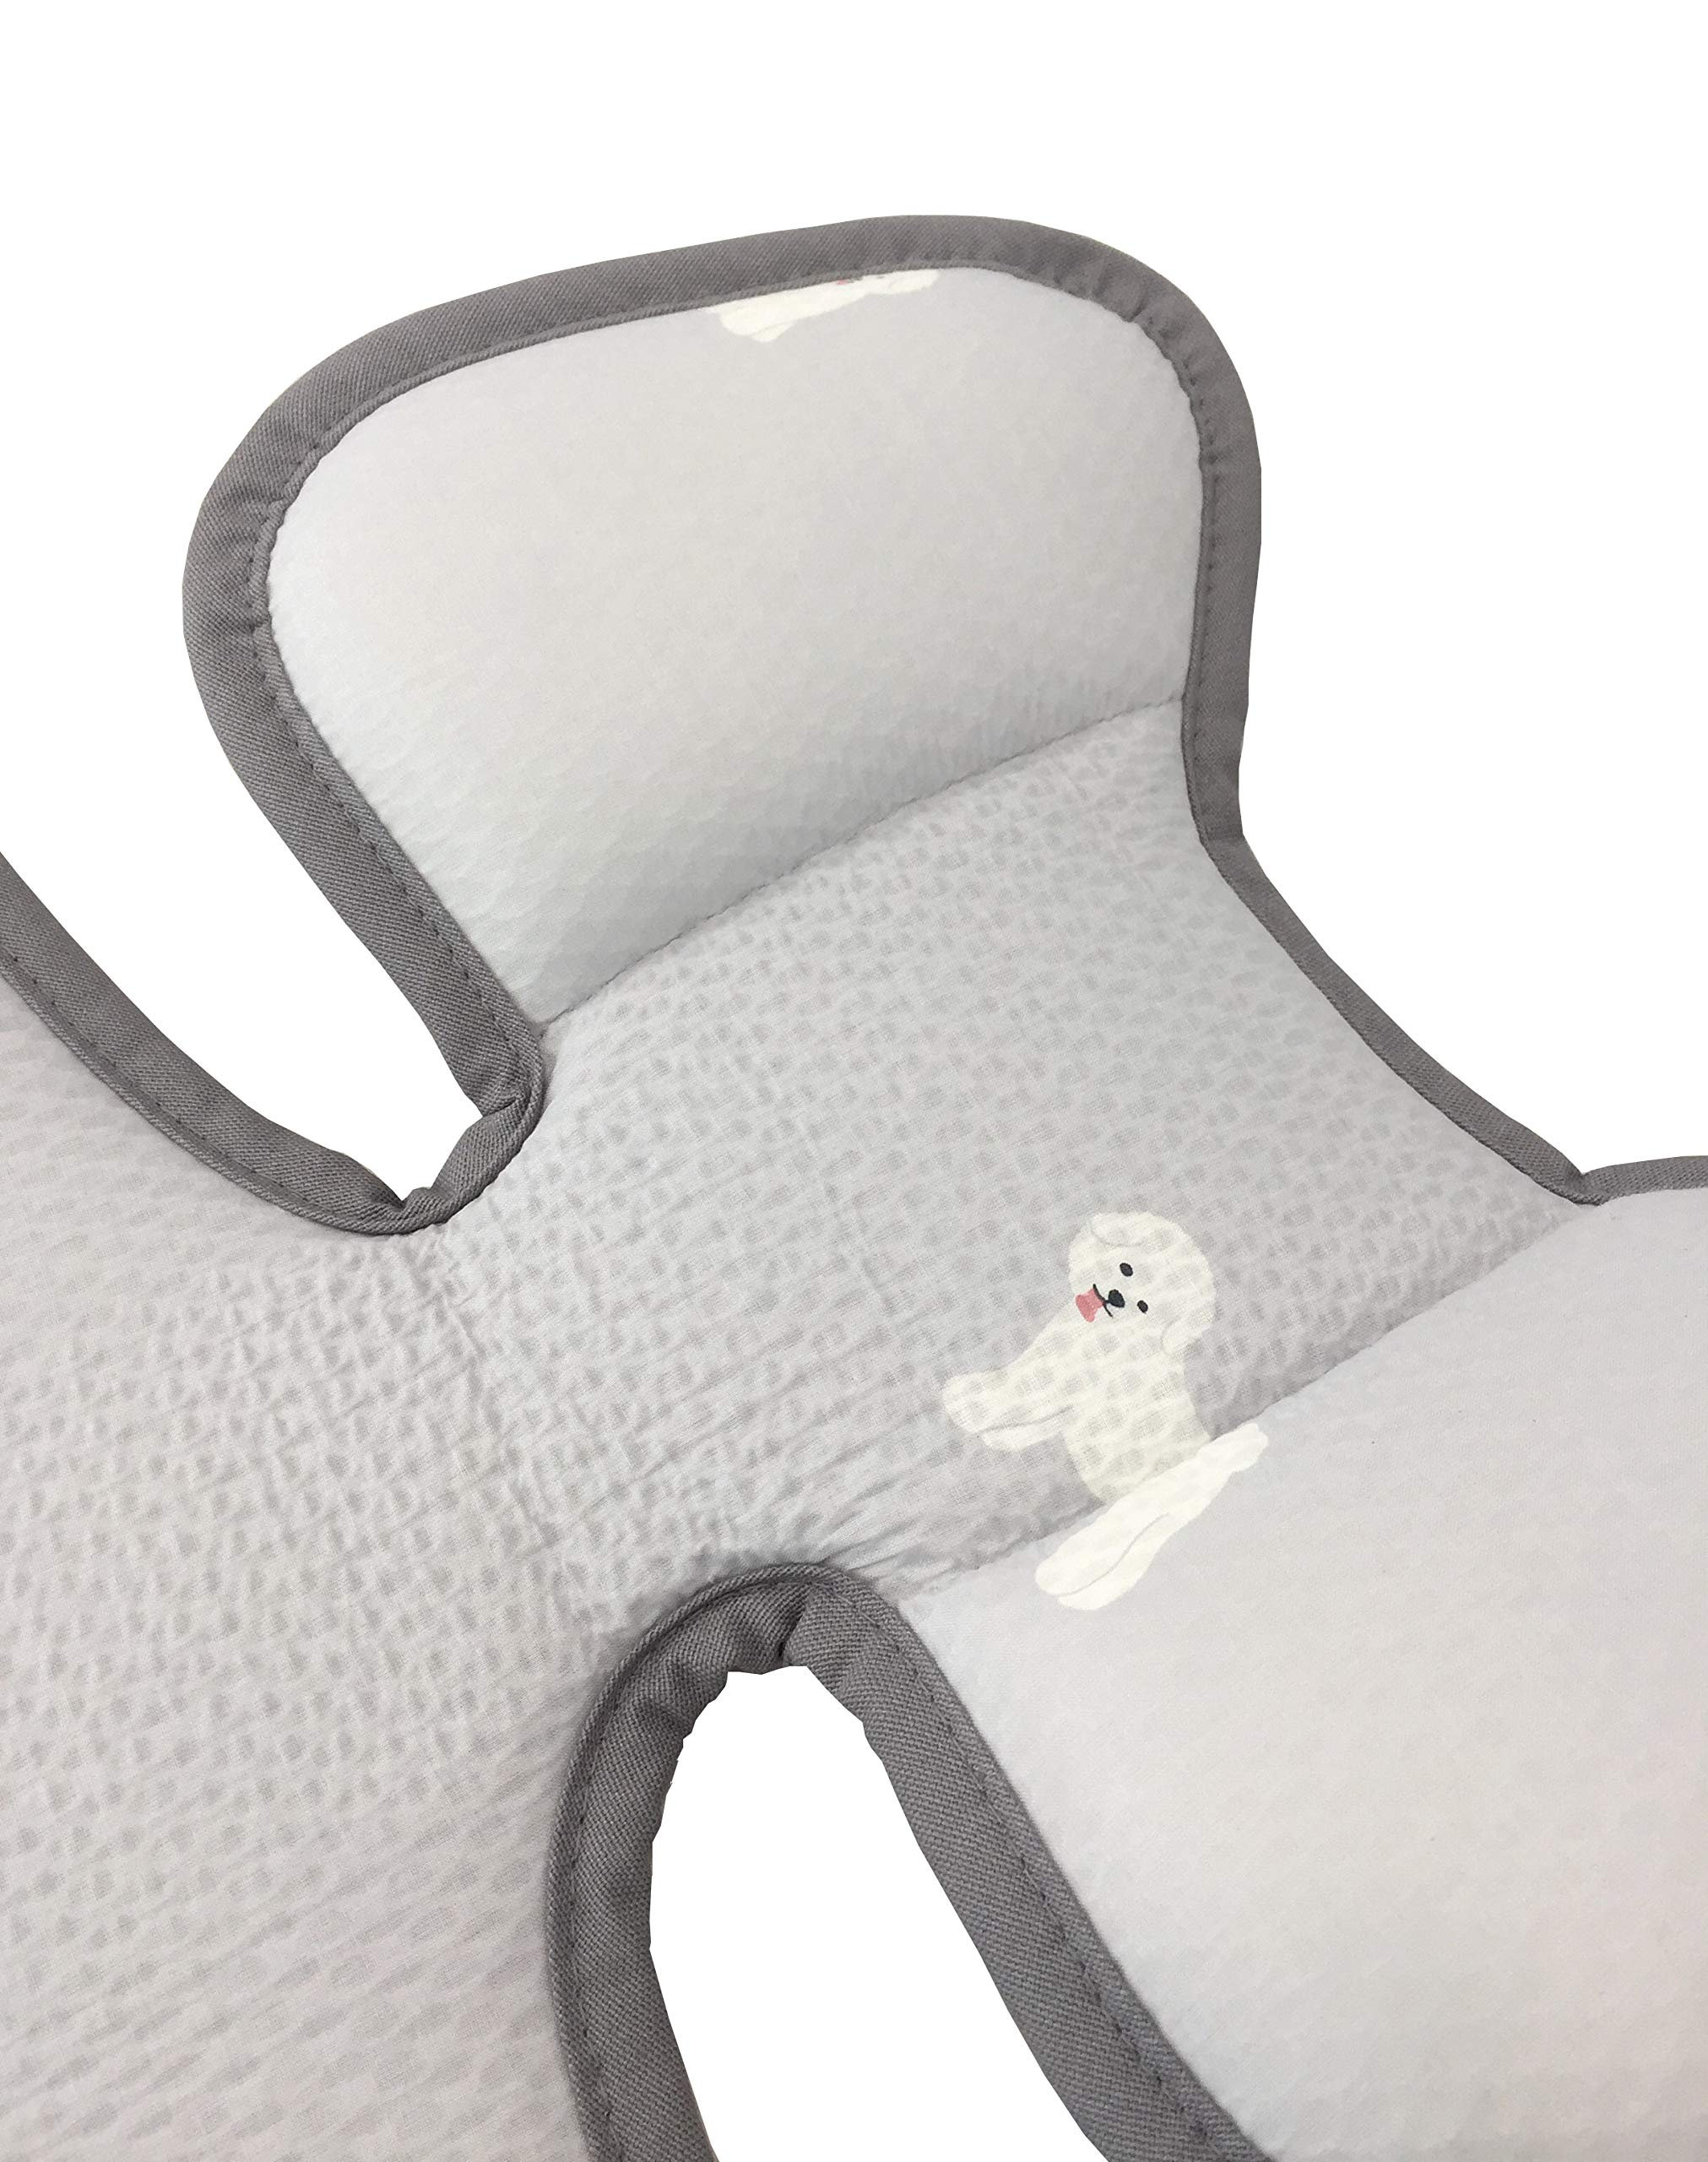 Momnoko 3D Air Mesh Cool Liner for Stroller & Car Seat (Puppy Pattern) by Momnoko (Image #4)